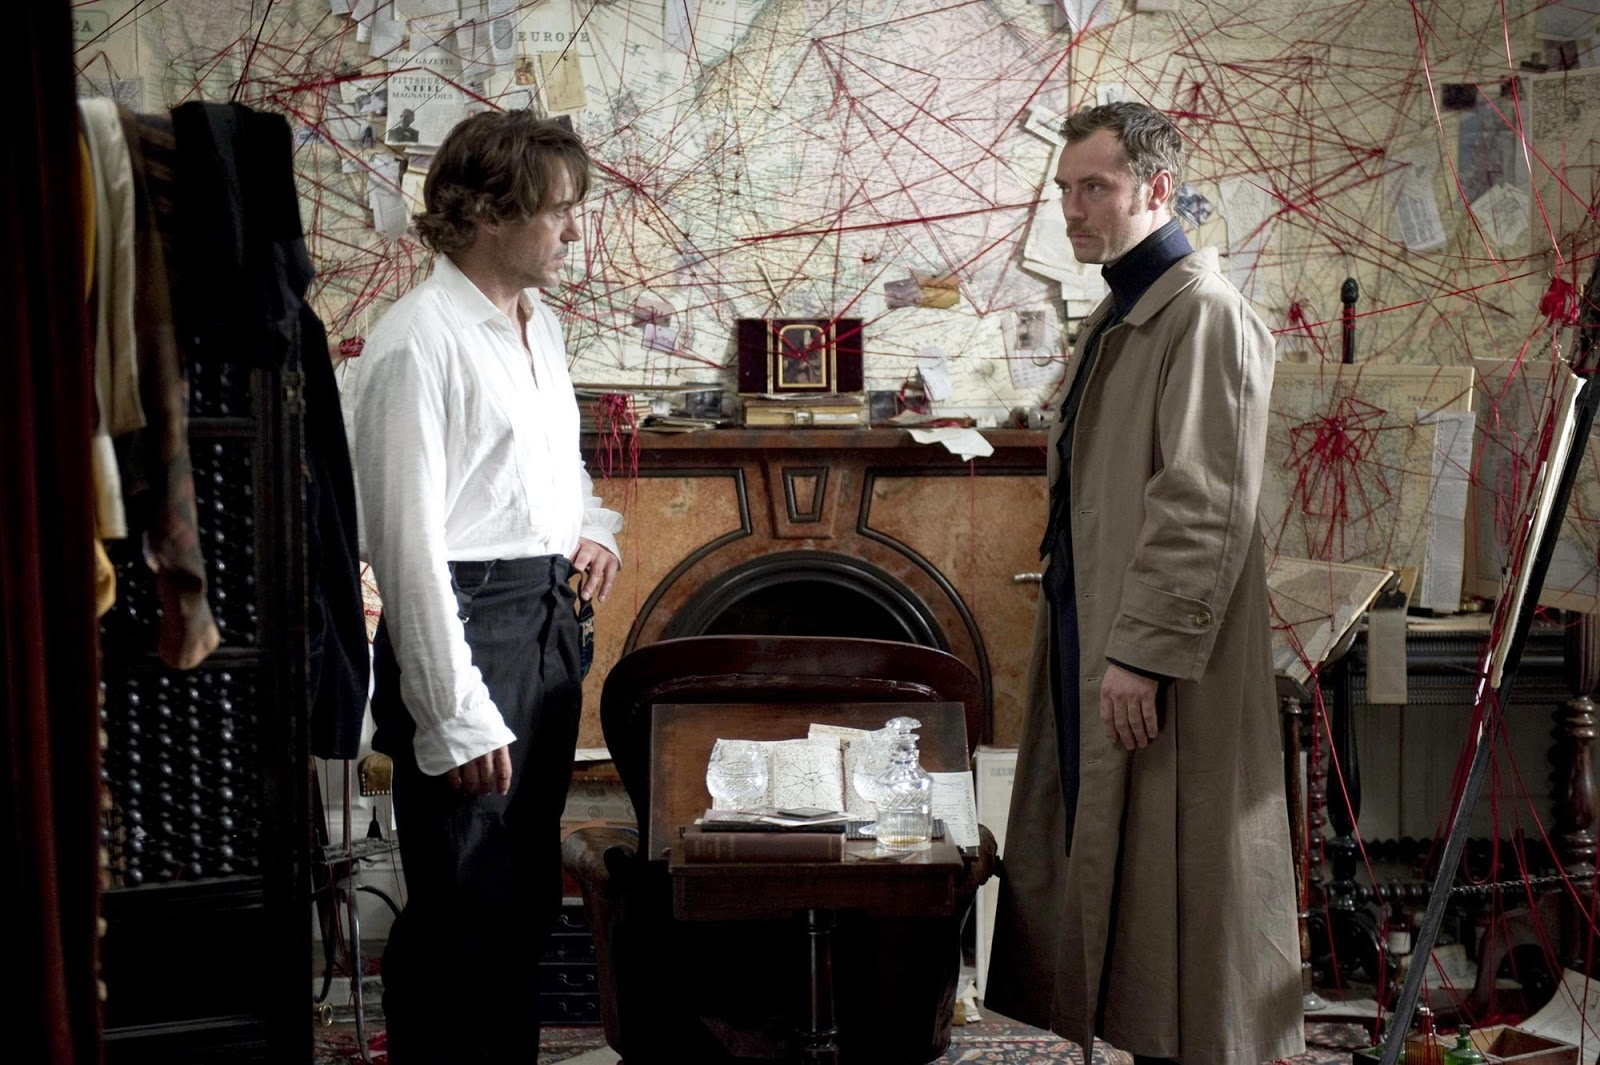 http://1.bp.blogspot.com/-rSVZJiEHDa4/TvqkDwqqN5I/AAAAAAAAC-I/bfLG9MMTKSI/s1600/Jude-Law-stars-as-Dr_-John-Watson-and-Robert-Downey-Jr_-stars-as-Sherlock-Holmes-in-Sherlock-Holmes-A-Game-of-Shadows-2011.jpg